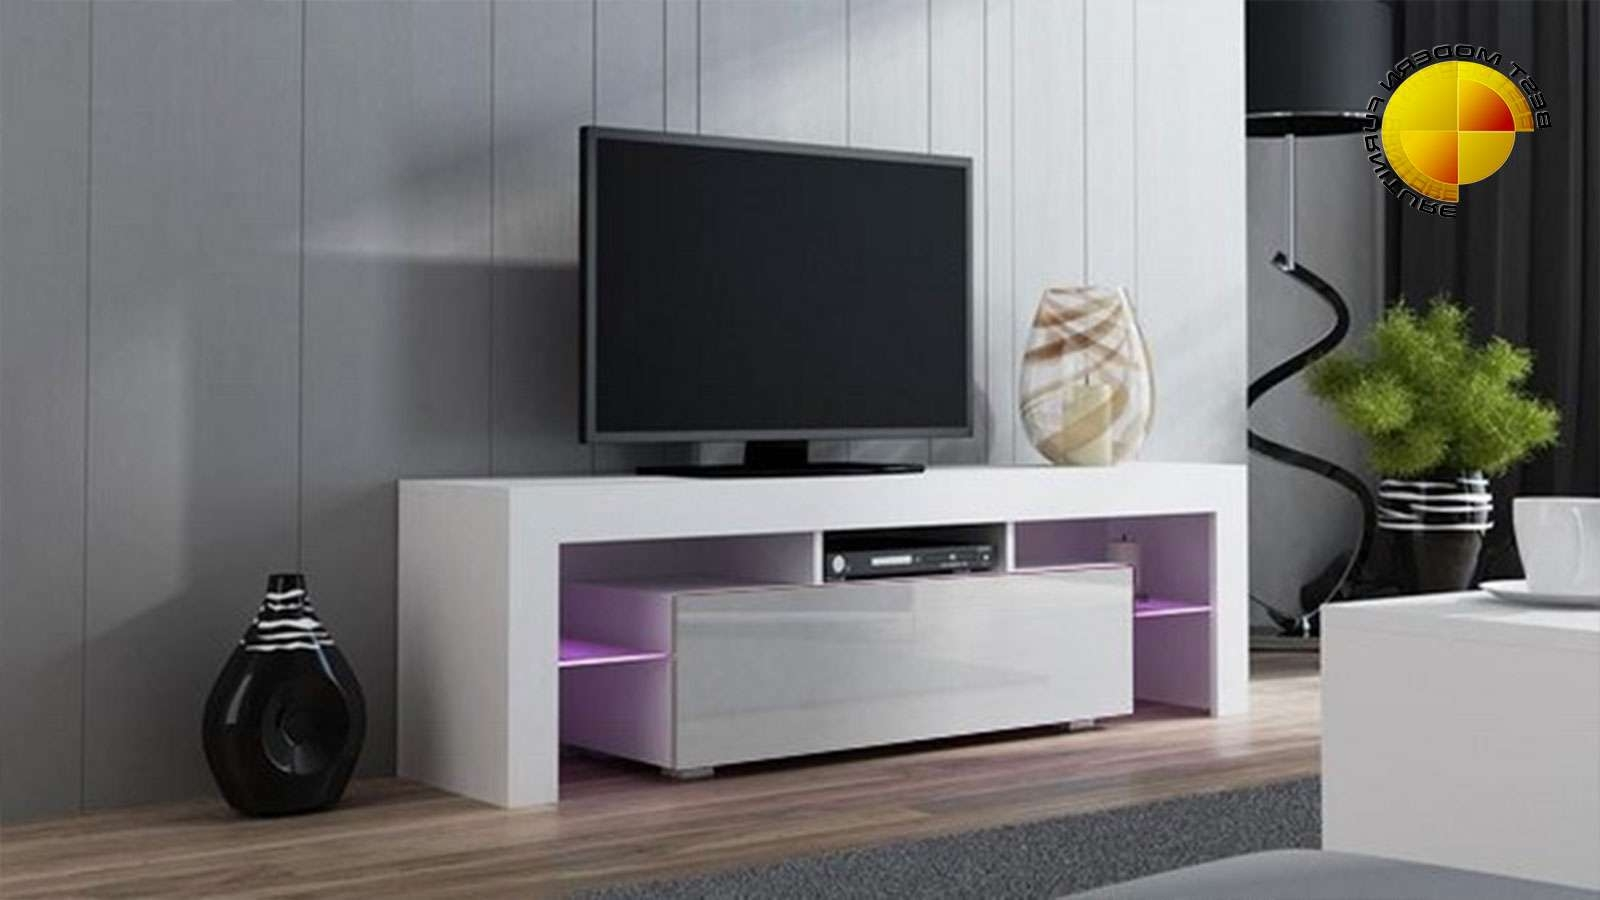 Modern Tv Stand 160cm High Gloss Cabinet Rgb Led Lights White Unit With Regard To Gloss Tv Stands (View 14 of 15)